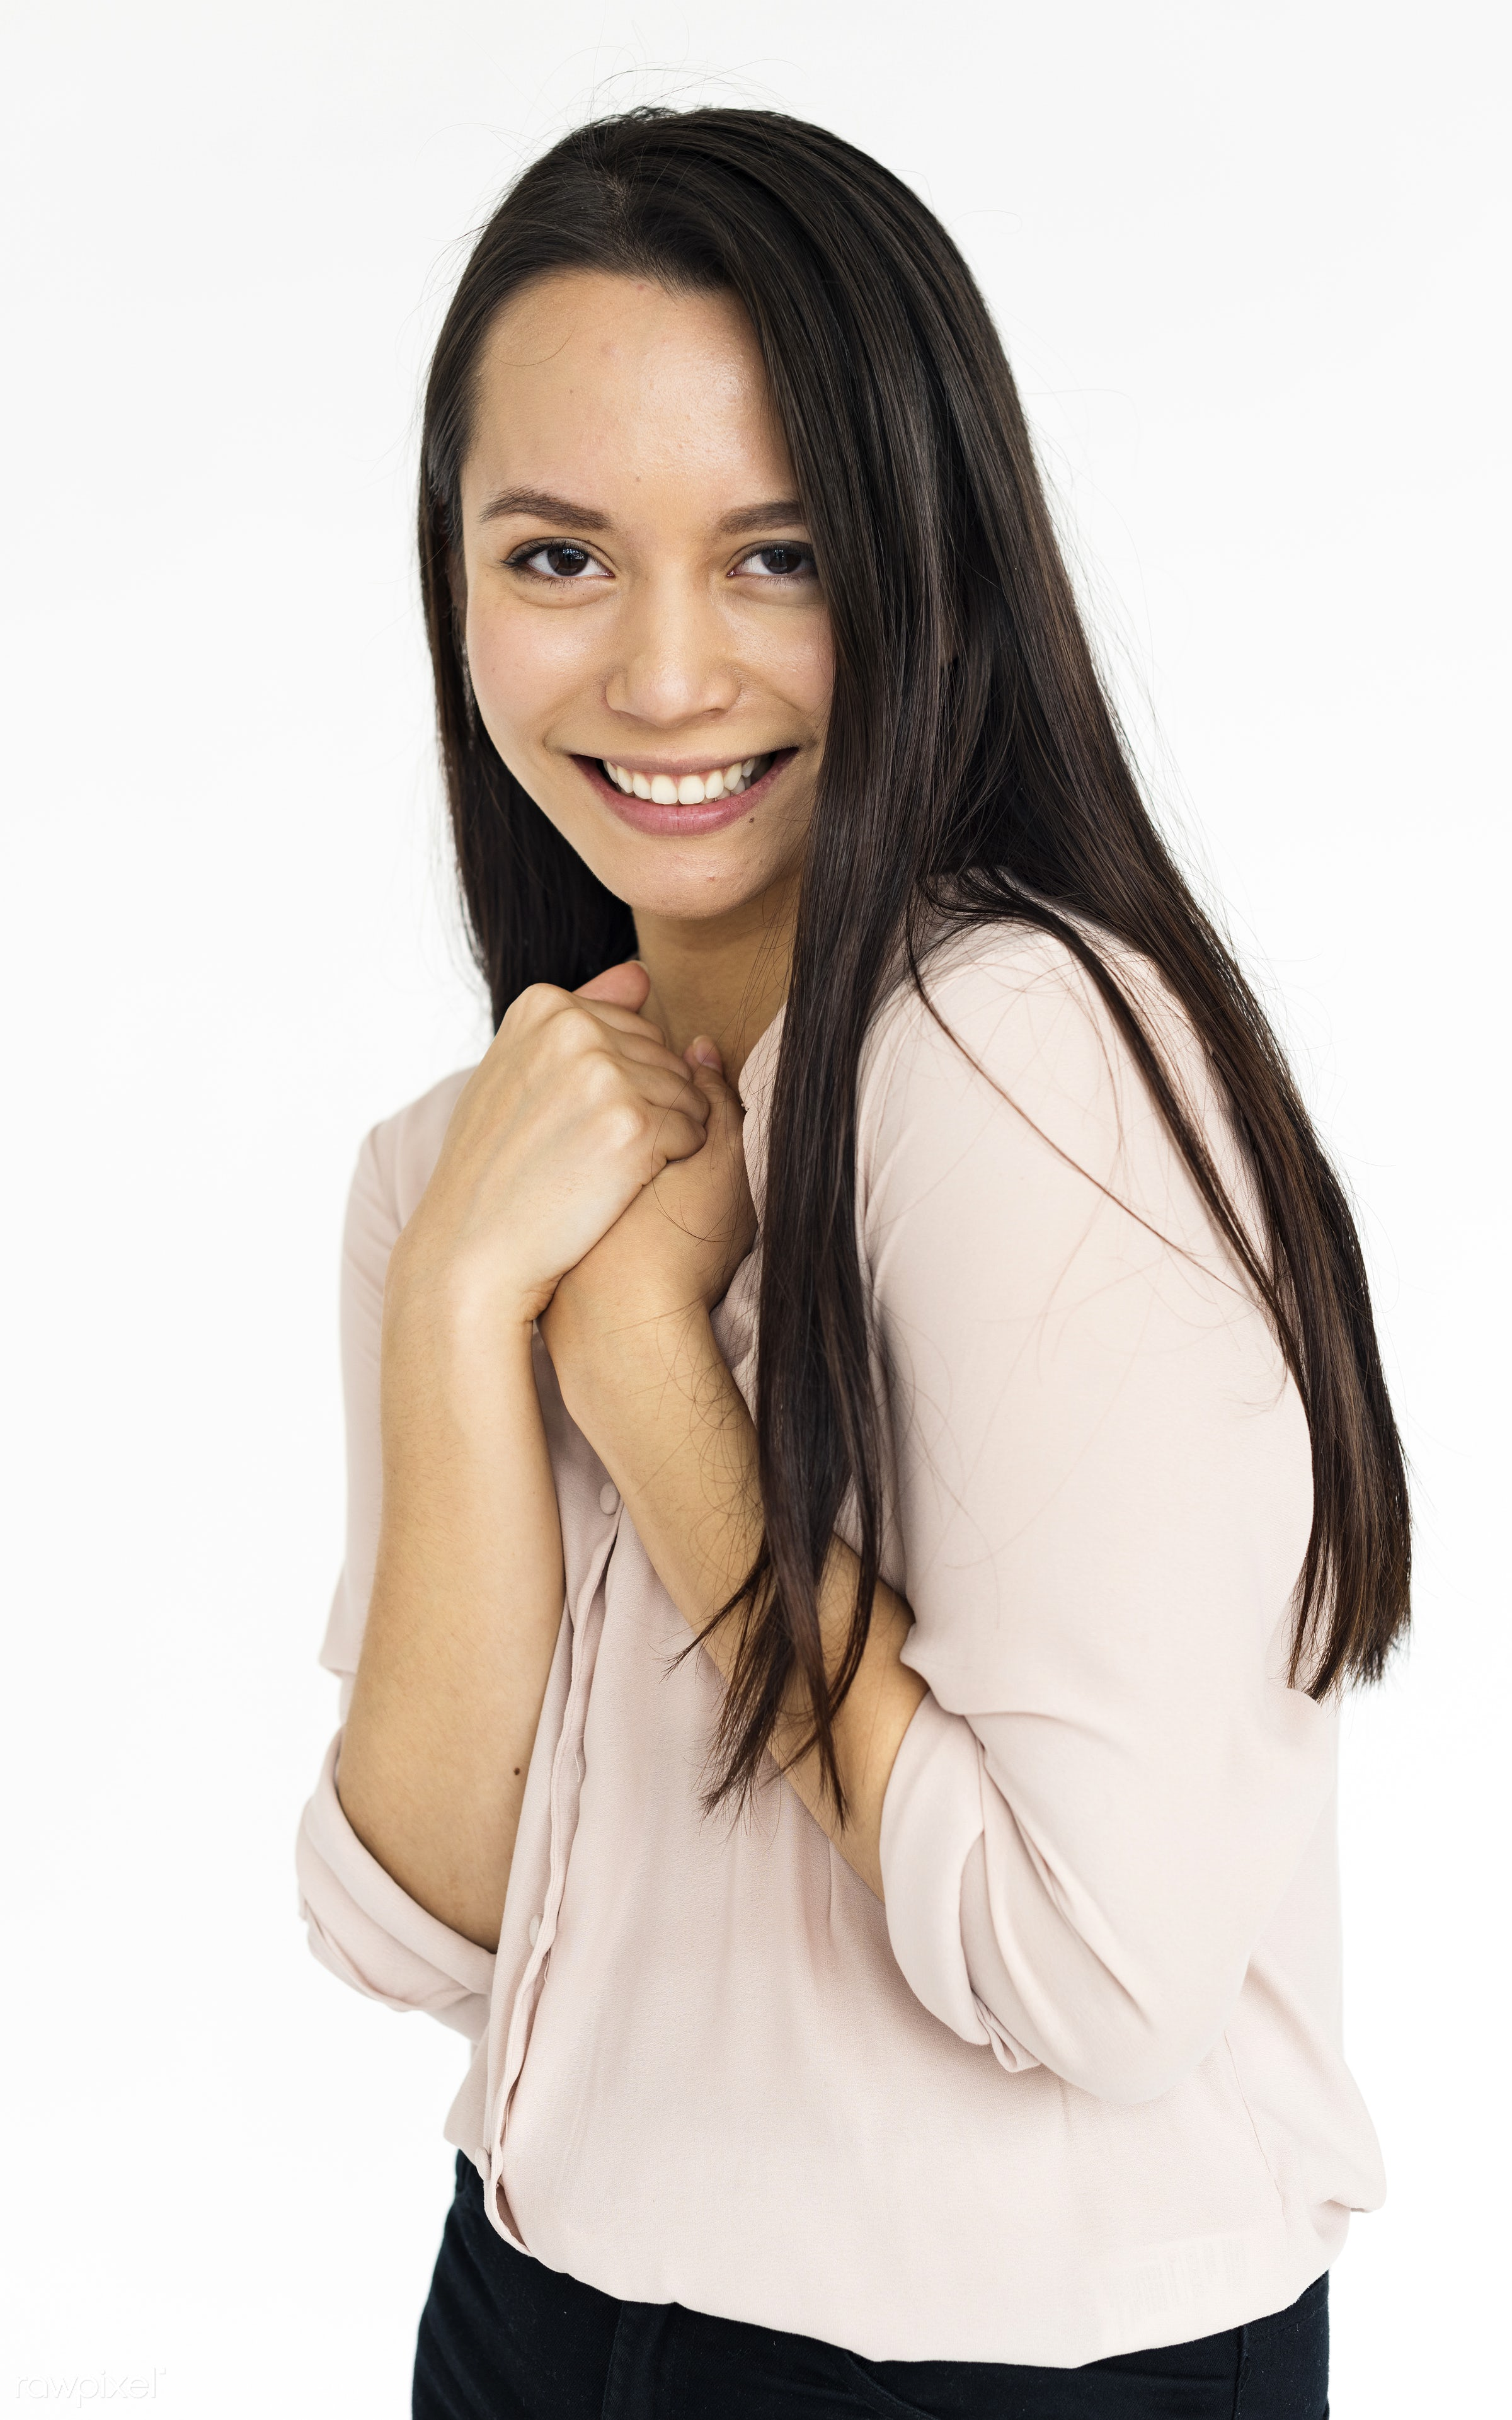 studio, expression, person, bright, caucasian, woman, relaxed, lifestyle, positive, smile, alone, cheerful, happiness,...